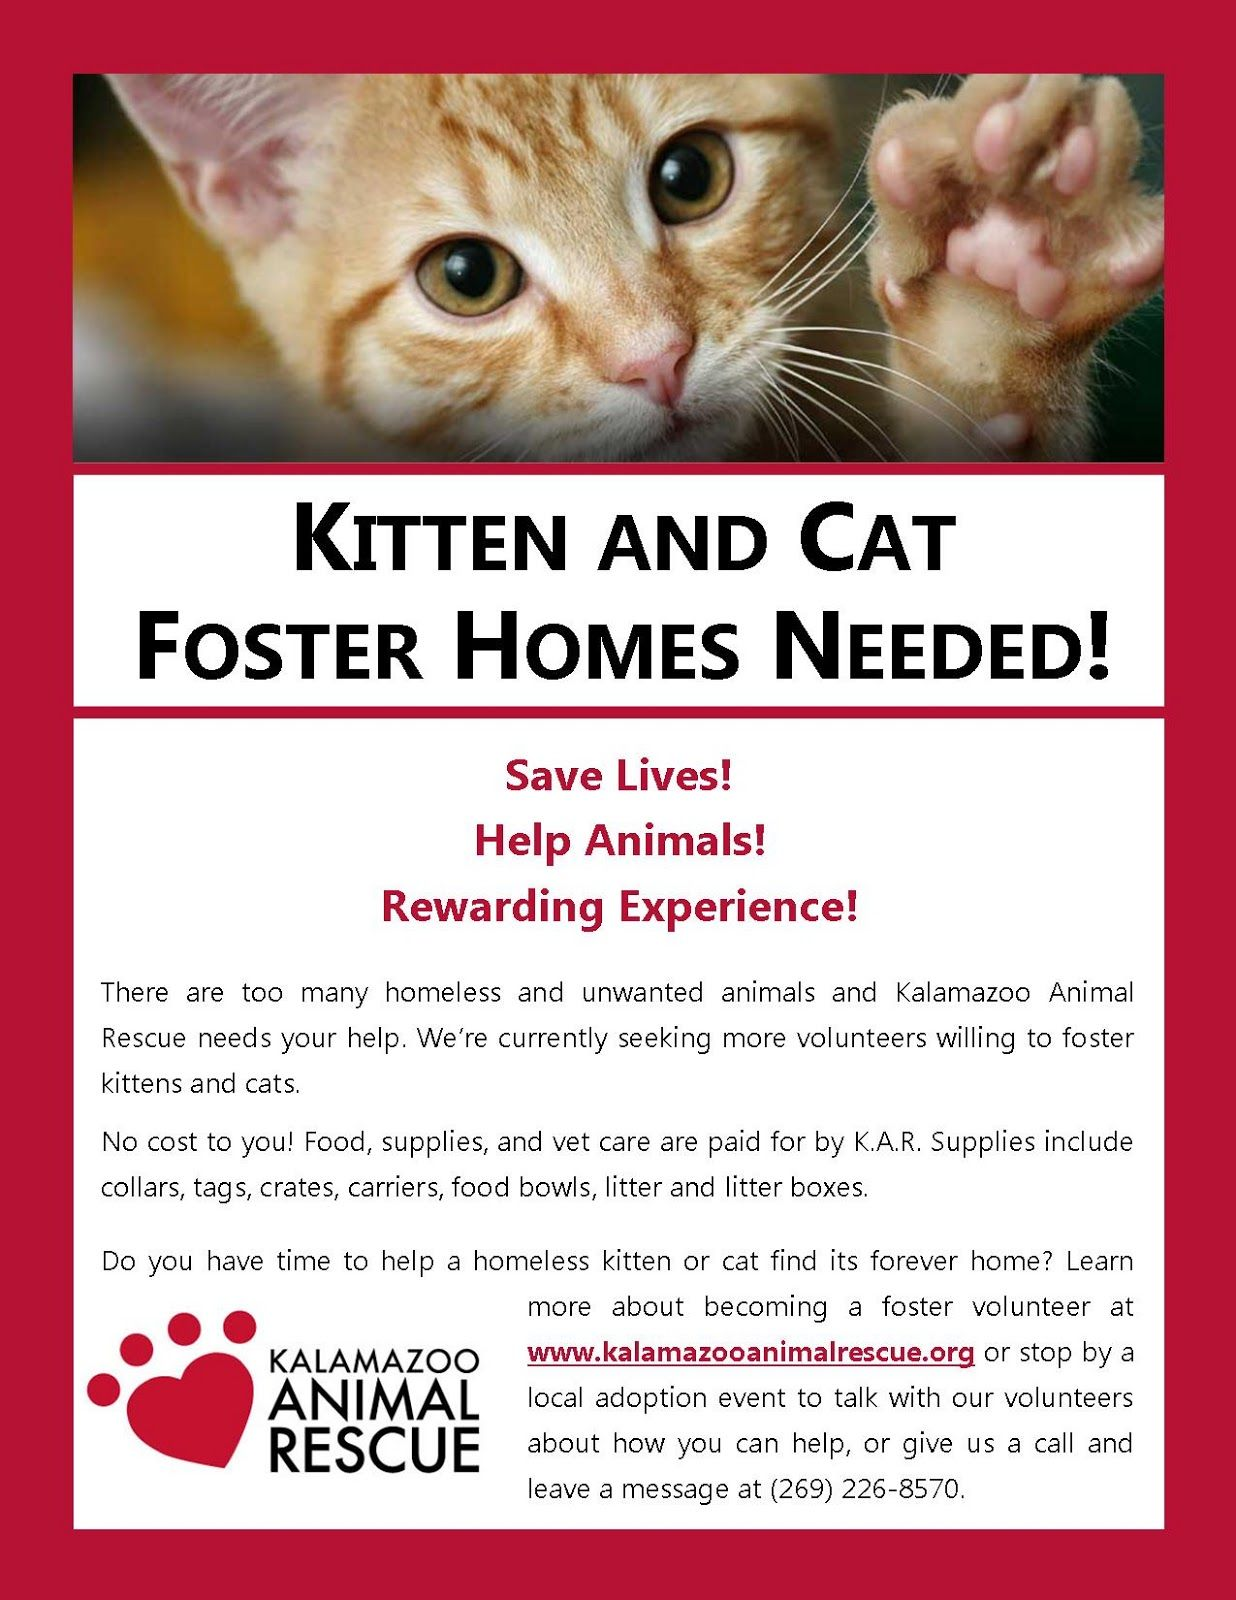 Kitten And Cat Foster Homes Needed Foster Home The Fosters Kittens